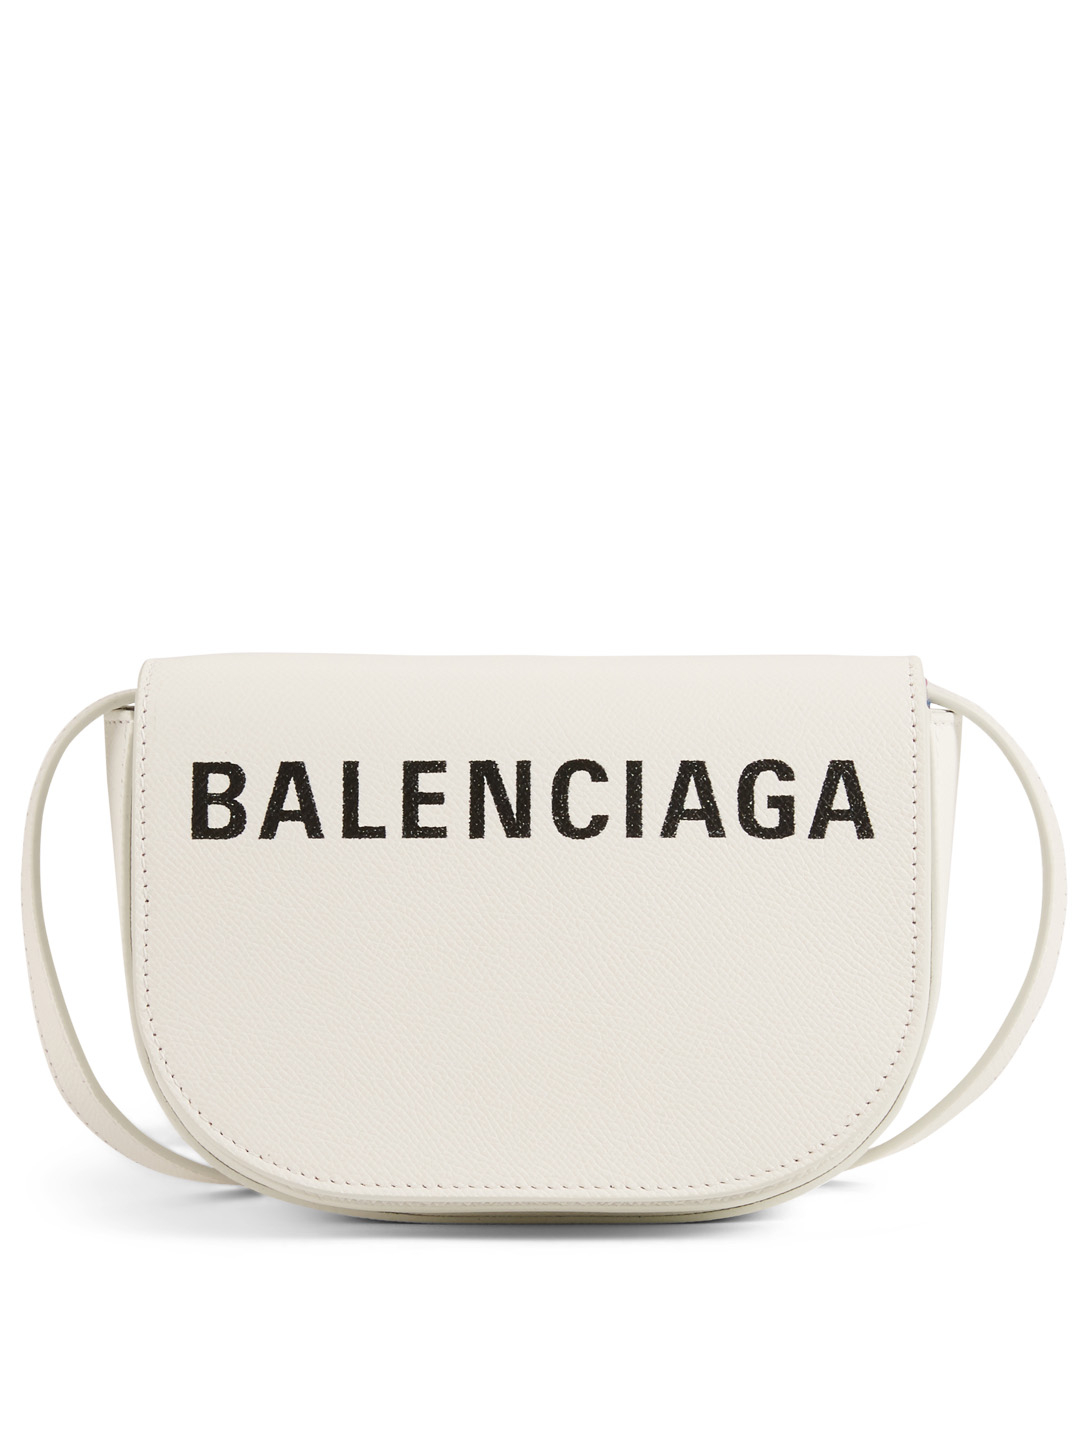 BALENCIAGA Extra Small Ville Leather Crossbody Day Bag With Logo Designers White